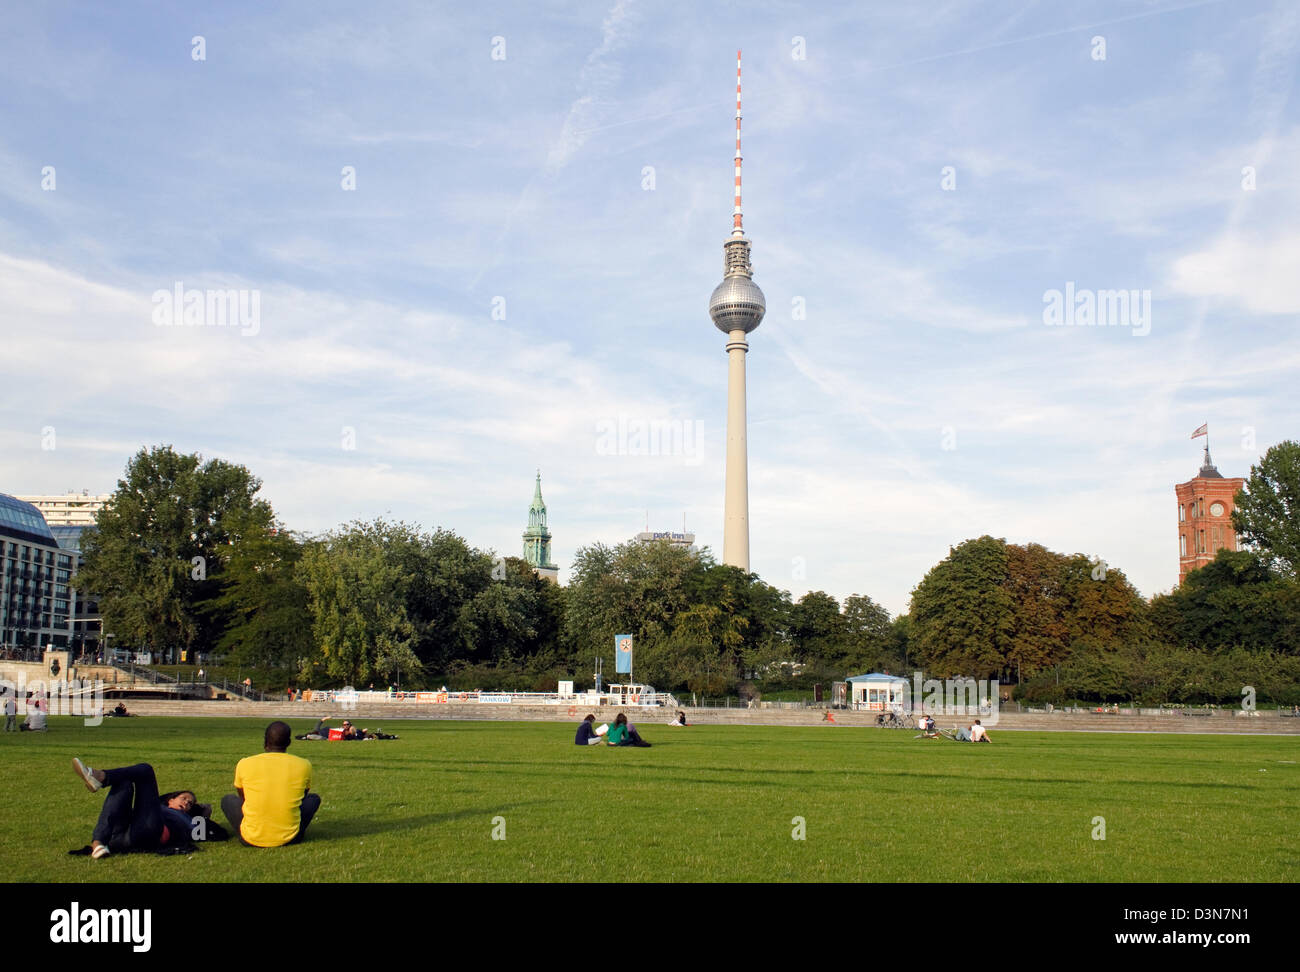 Berlin, Germany, View from Castle Square towards Alexanderplatz - Stock Image